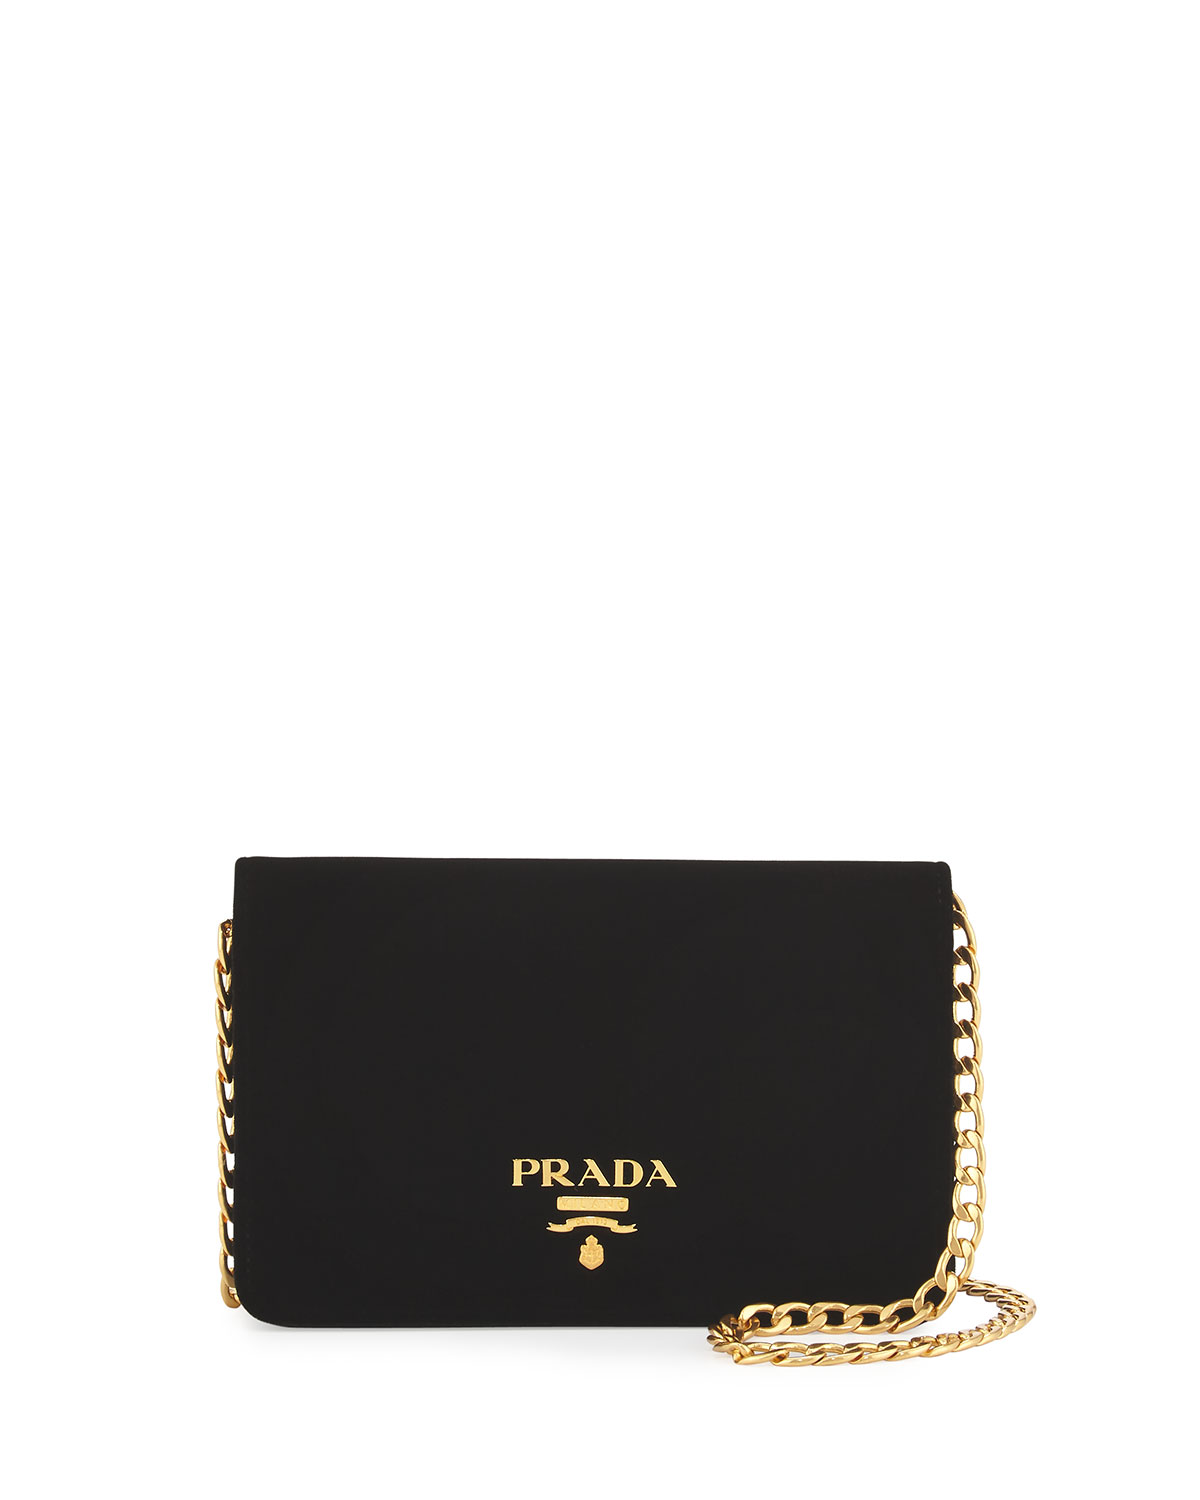 4411bae30cff4f Prada Velvet Chain Shoulder Bag, Black (Nero) | Neiman Marcus